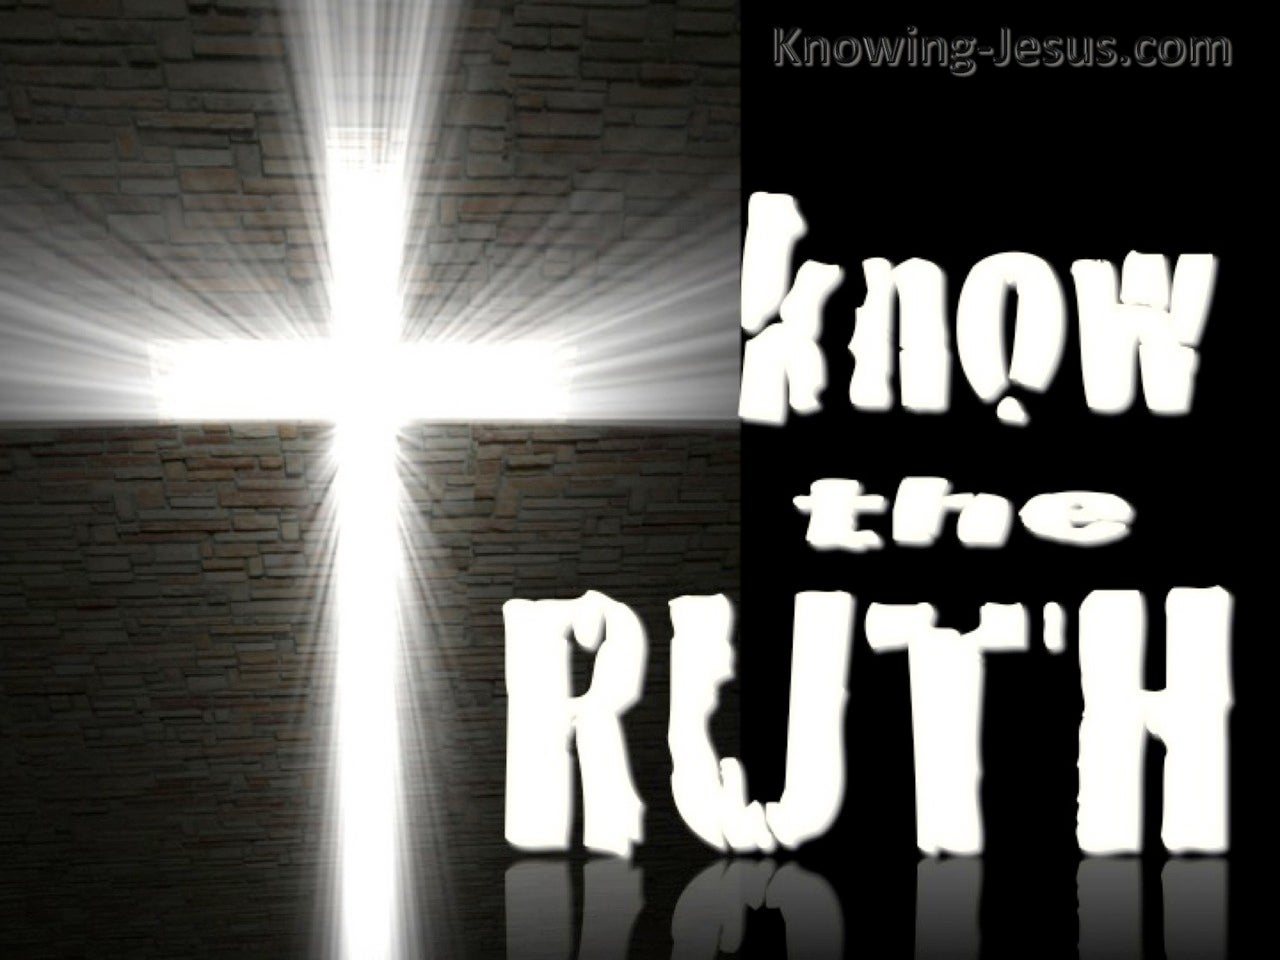 Know The Truth (devotional) (black) - 1 John 3:19